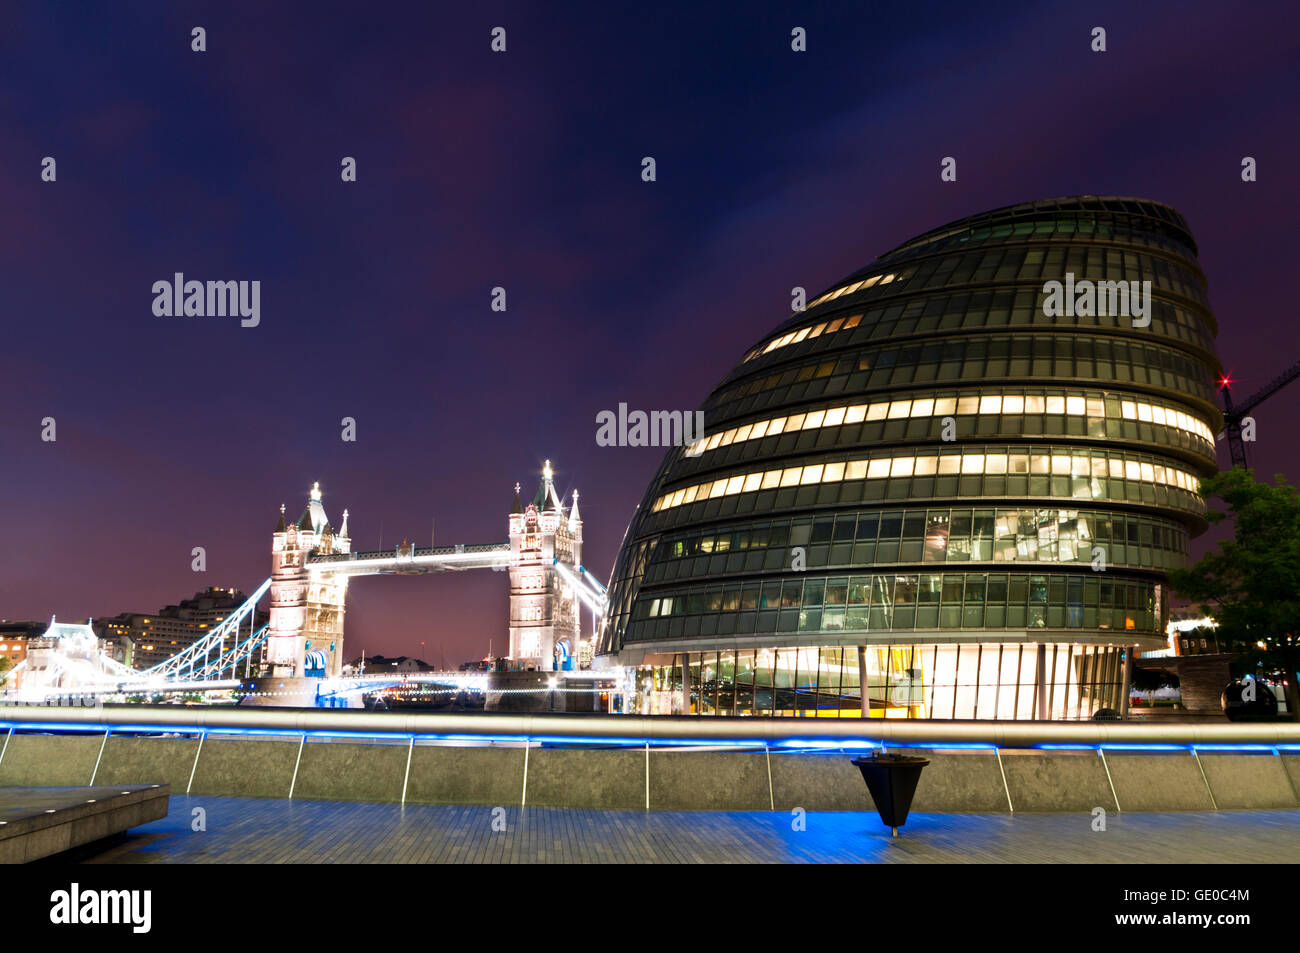 Night time view of the GLC building with Tower Bridge in the background, London England - Stock Image